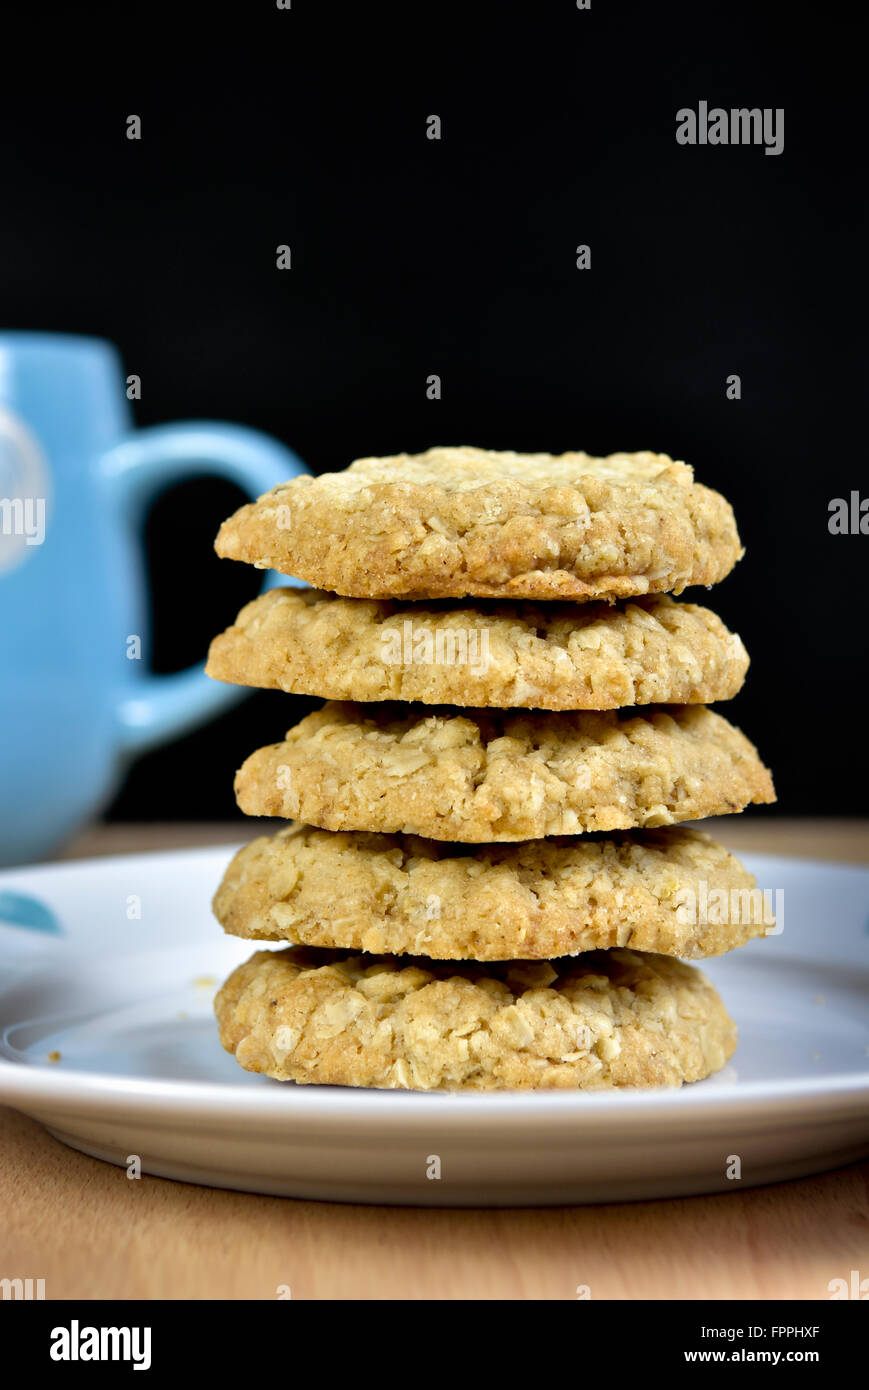 Pile of home made oat cookies on plate with edge of blue mug against a black background - Stock Image